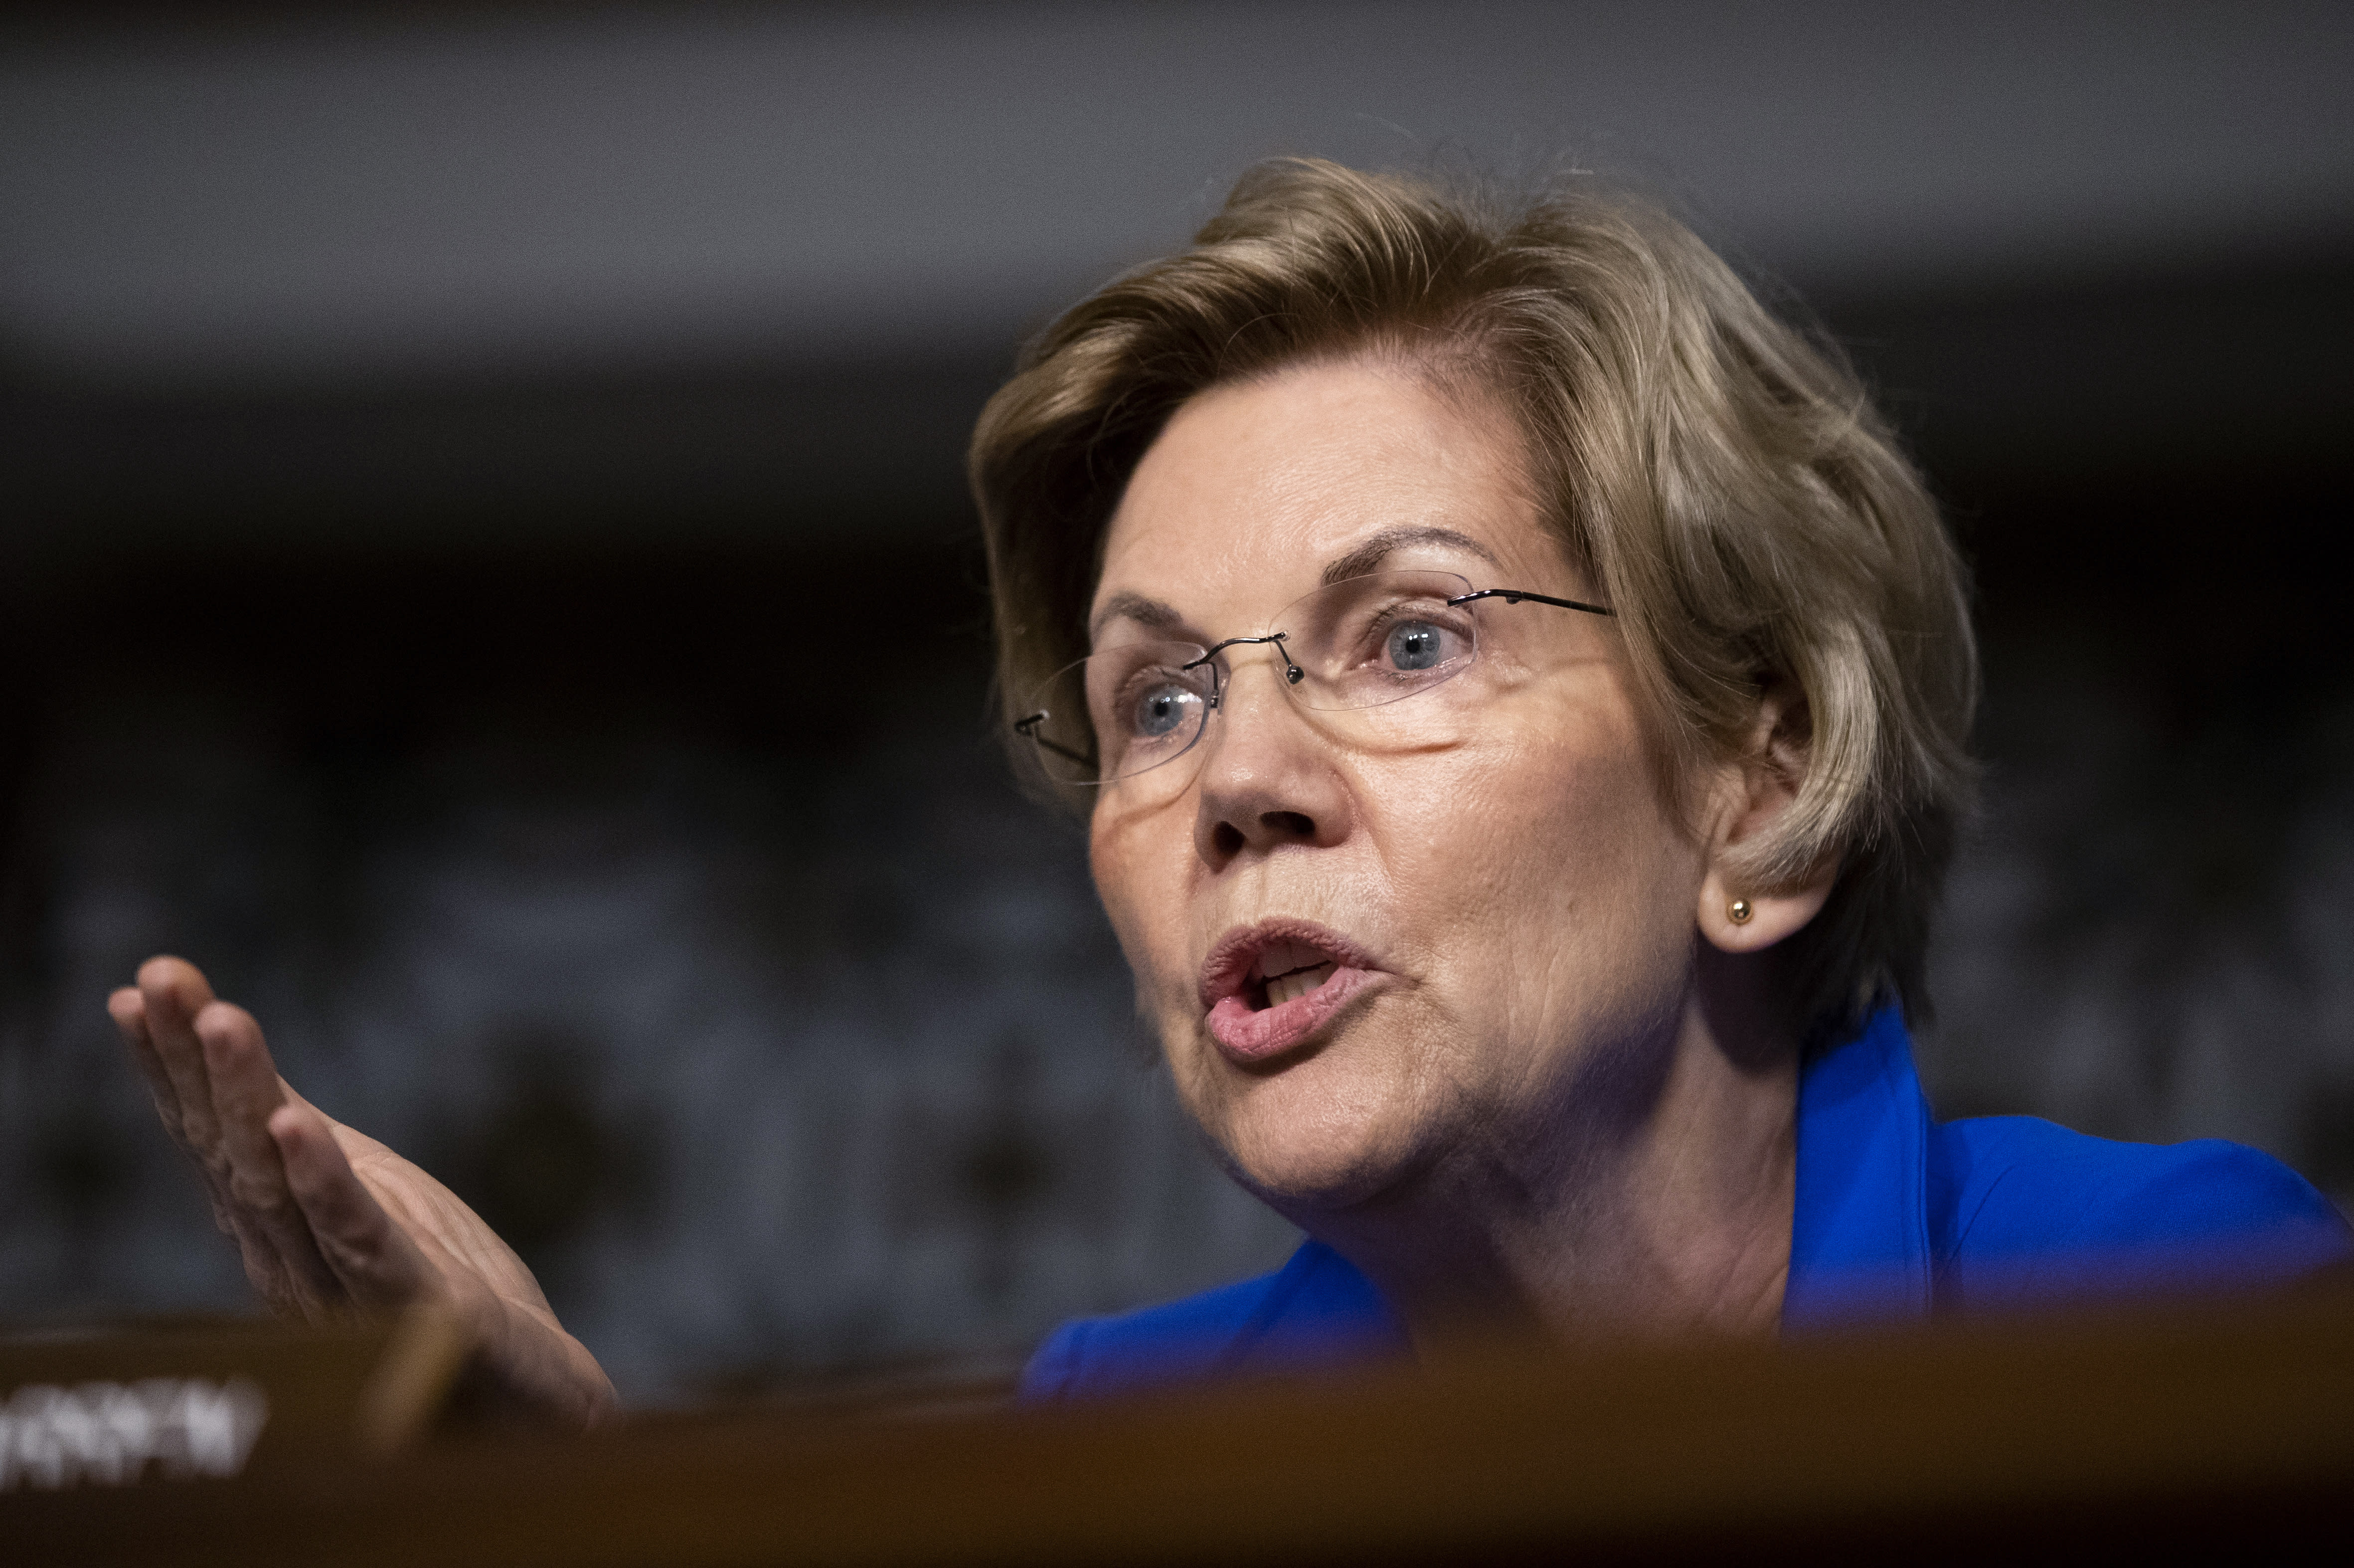 Senate Armed Services Committee member Sen. Elizabeth Warren, D-Mass., questions Secretary of the Army and Secretary of Defense nominee Mark Esper during his confirmation hearing on Capitol Hill in Washington, Tuesday, July 16, 2019. (AP Photo/Manuel Balce Ceneta)